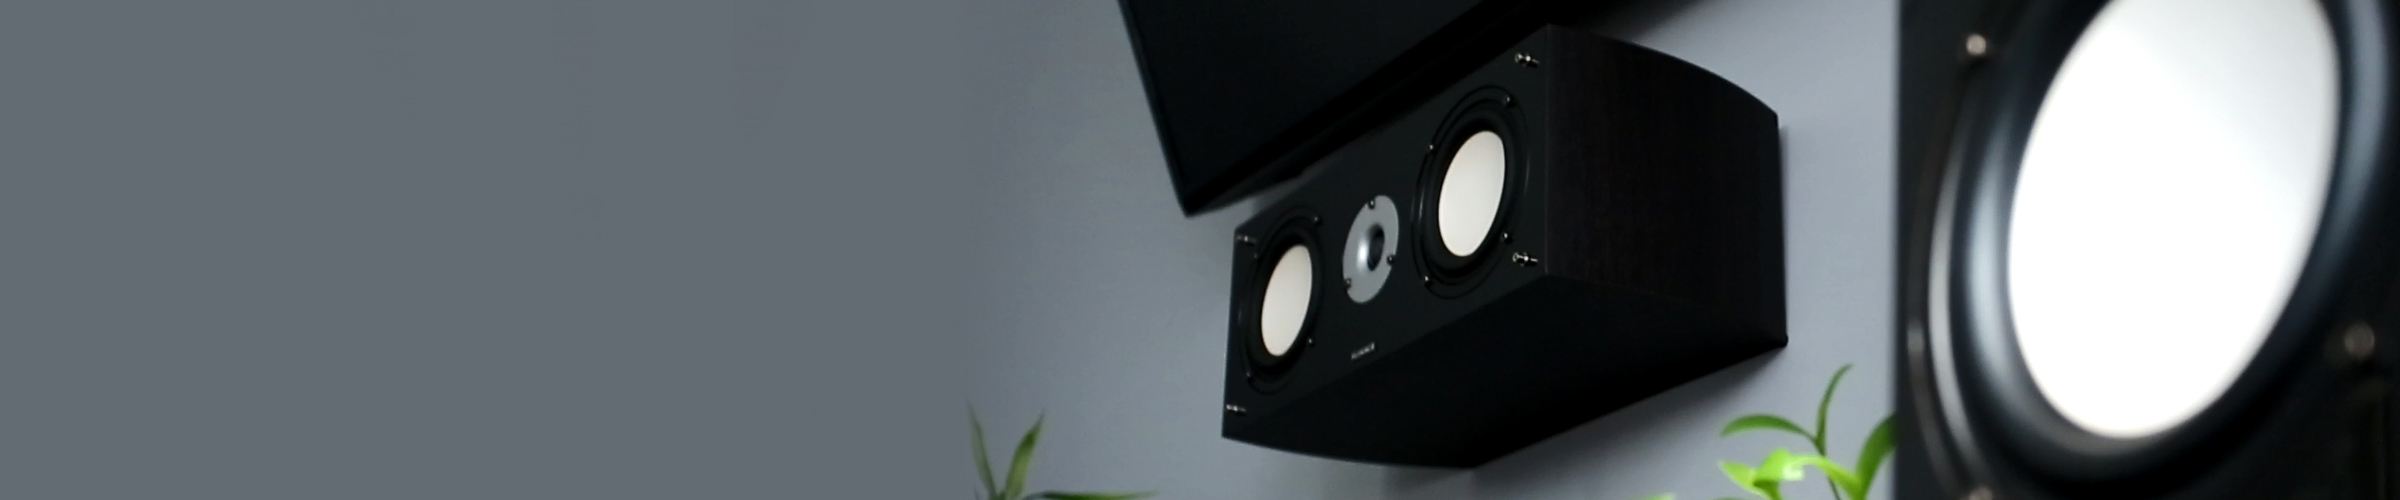 XL7CBK Center Channel Speaker Intro